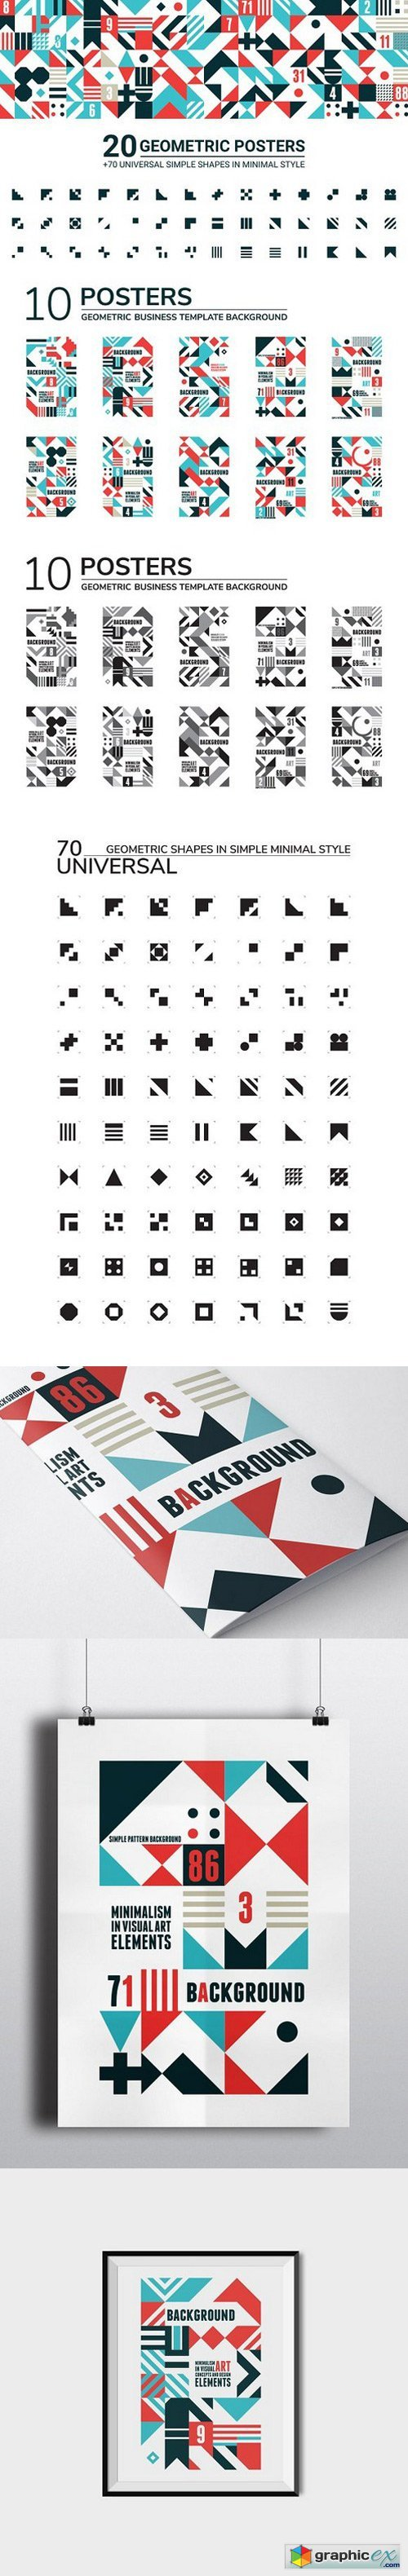 20 GEOMETRIC POSTERS & 70 SHAPES 1174725